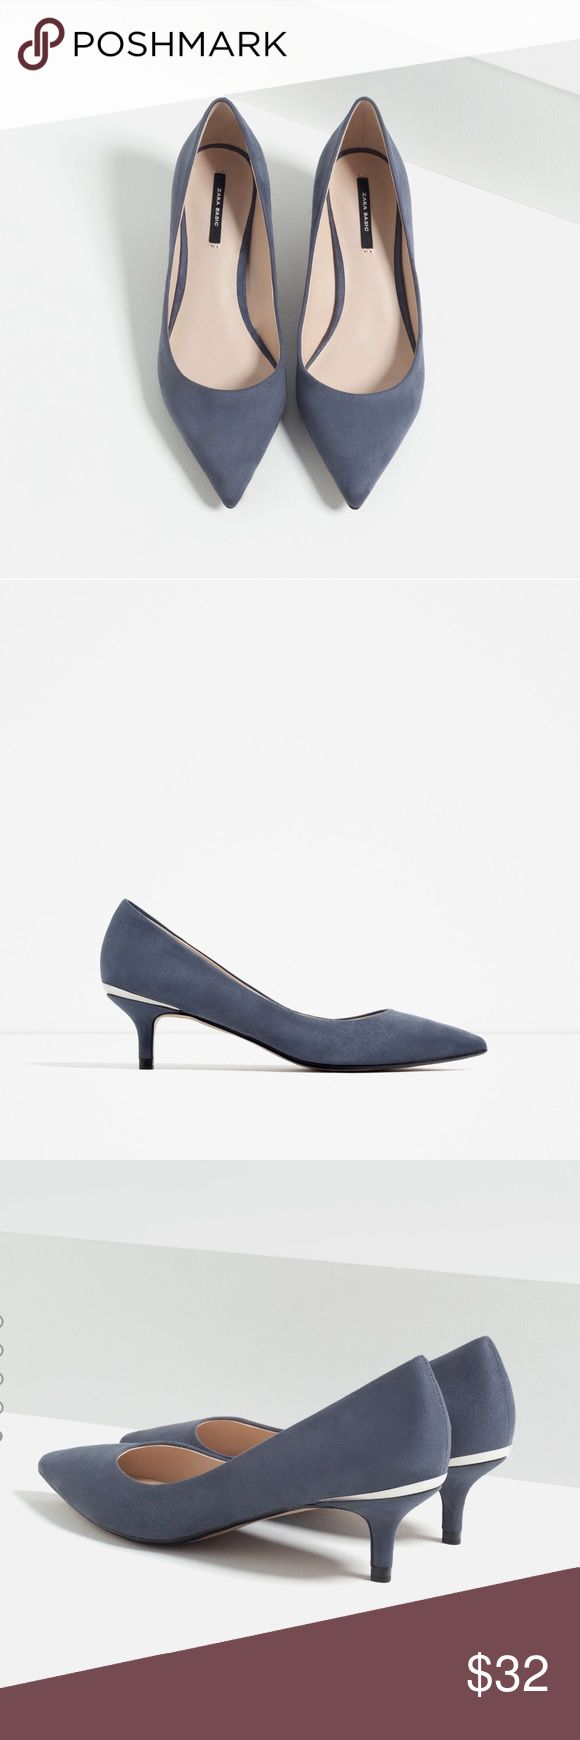 Zara Low-heeled Shoes Blue-gray color. Heel height 5cm. Cute, classy, and comfortable. Metallic silver detail at the back. Brand new with tags. US size 11, Euro size 42. Zara Shoes Heels